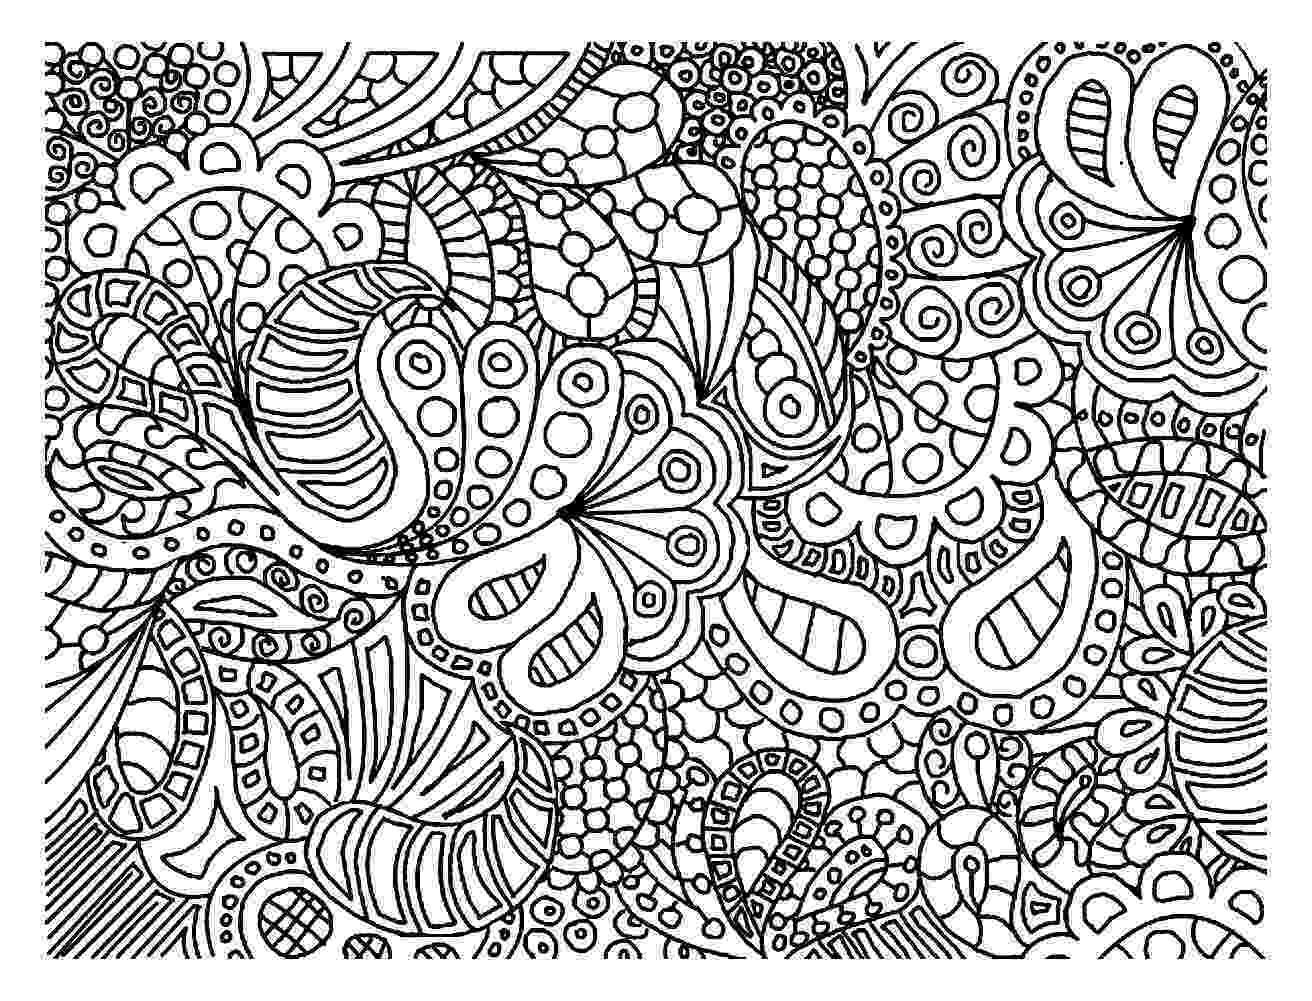 doodle art coloring book doodle happy new year 2016 doodle art doodling adult book art coloring doodle